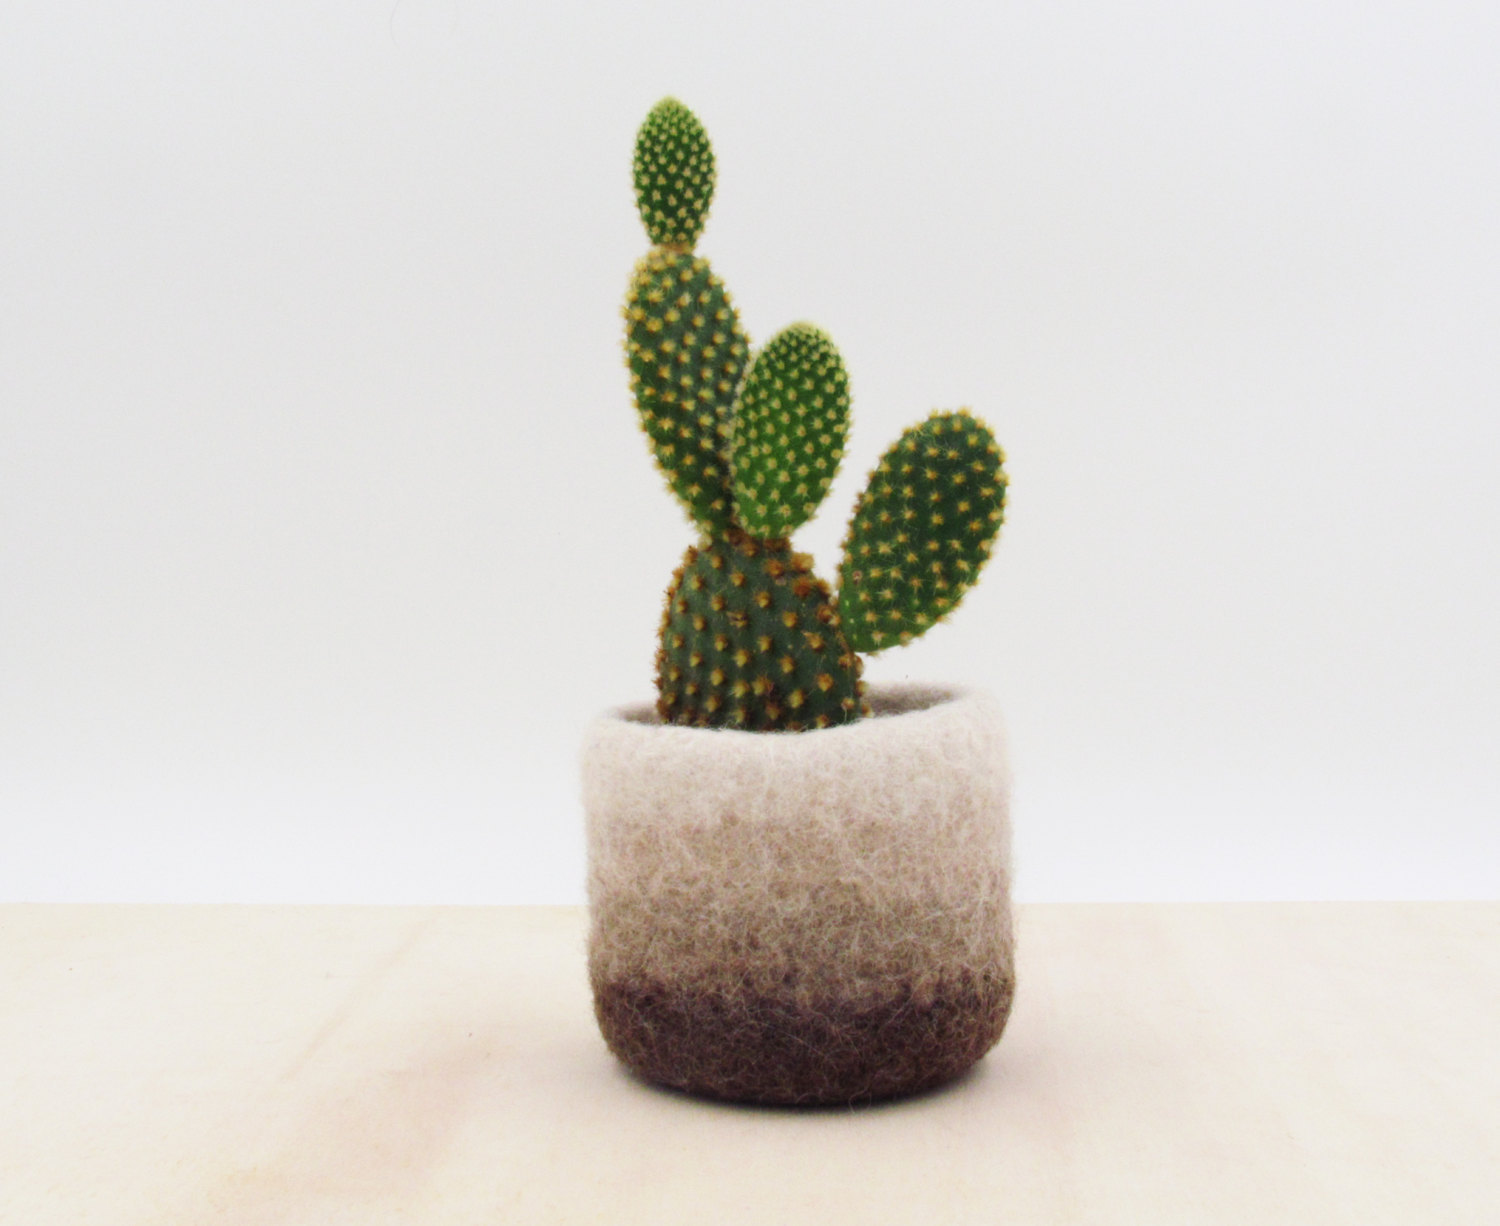 Felt succulent vase / Earth / felted planter / cactus vase / Ombre brown / house